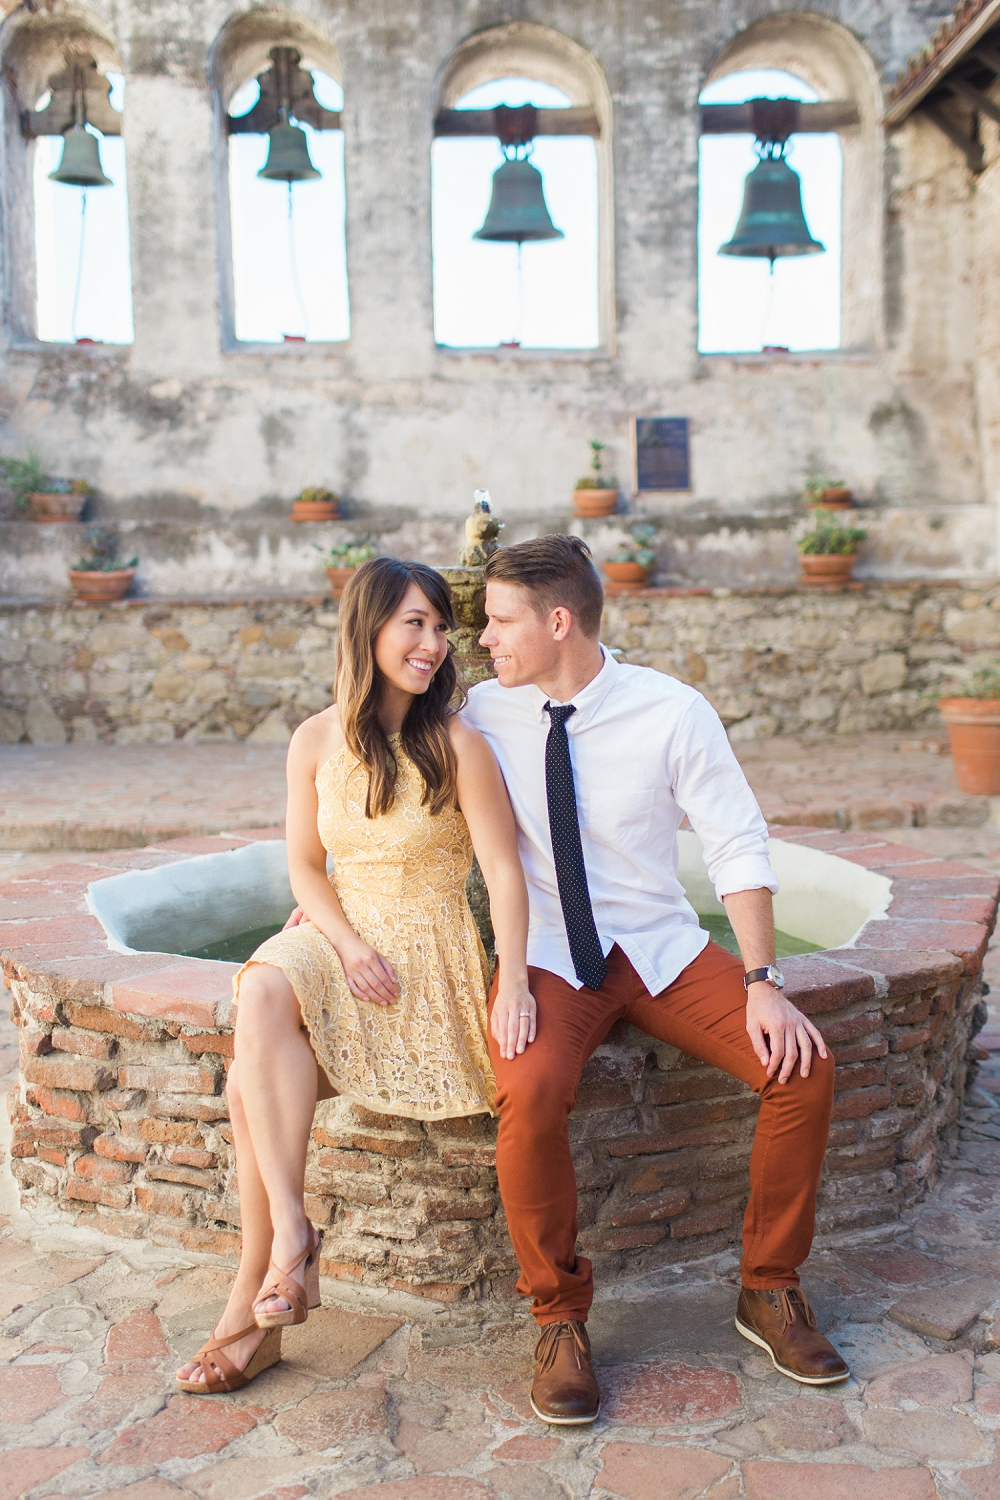 Megan Hartley Photography Orange County Engagement Photographer  San Juan Capistrano Wedding Photographer0023.jpg